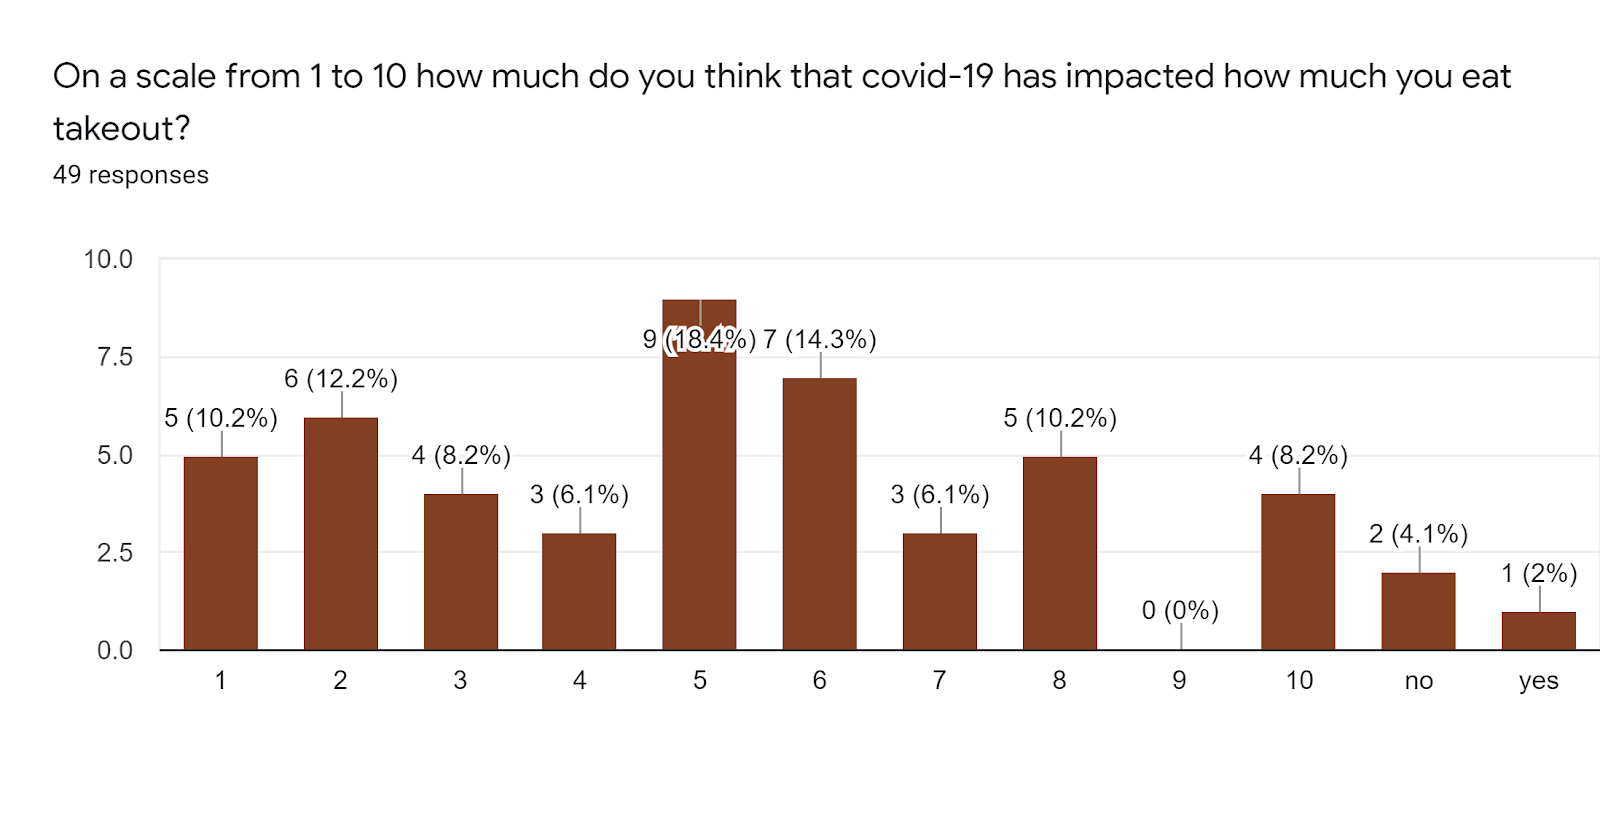 Forms response chart. Question title: On a scale from 1 to 10 how much do you think that covid-19 has impacted how much you eat takeout?. Number of responses: 49 responses.